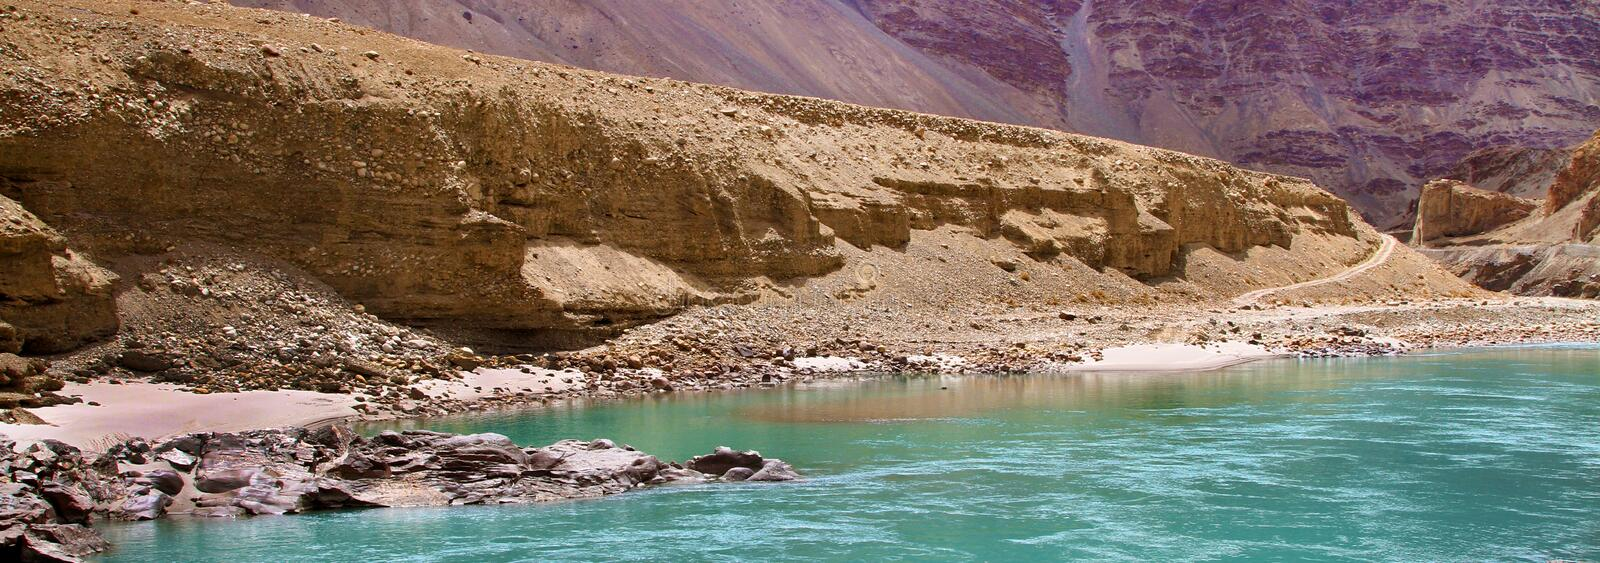 Download Sangam river stock image. Image of river, mountains, environment - 26026713